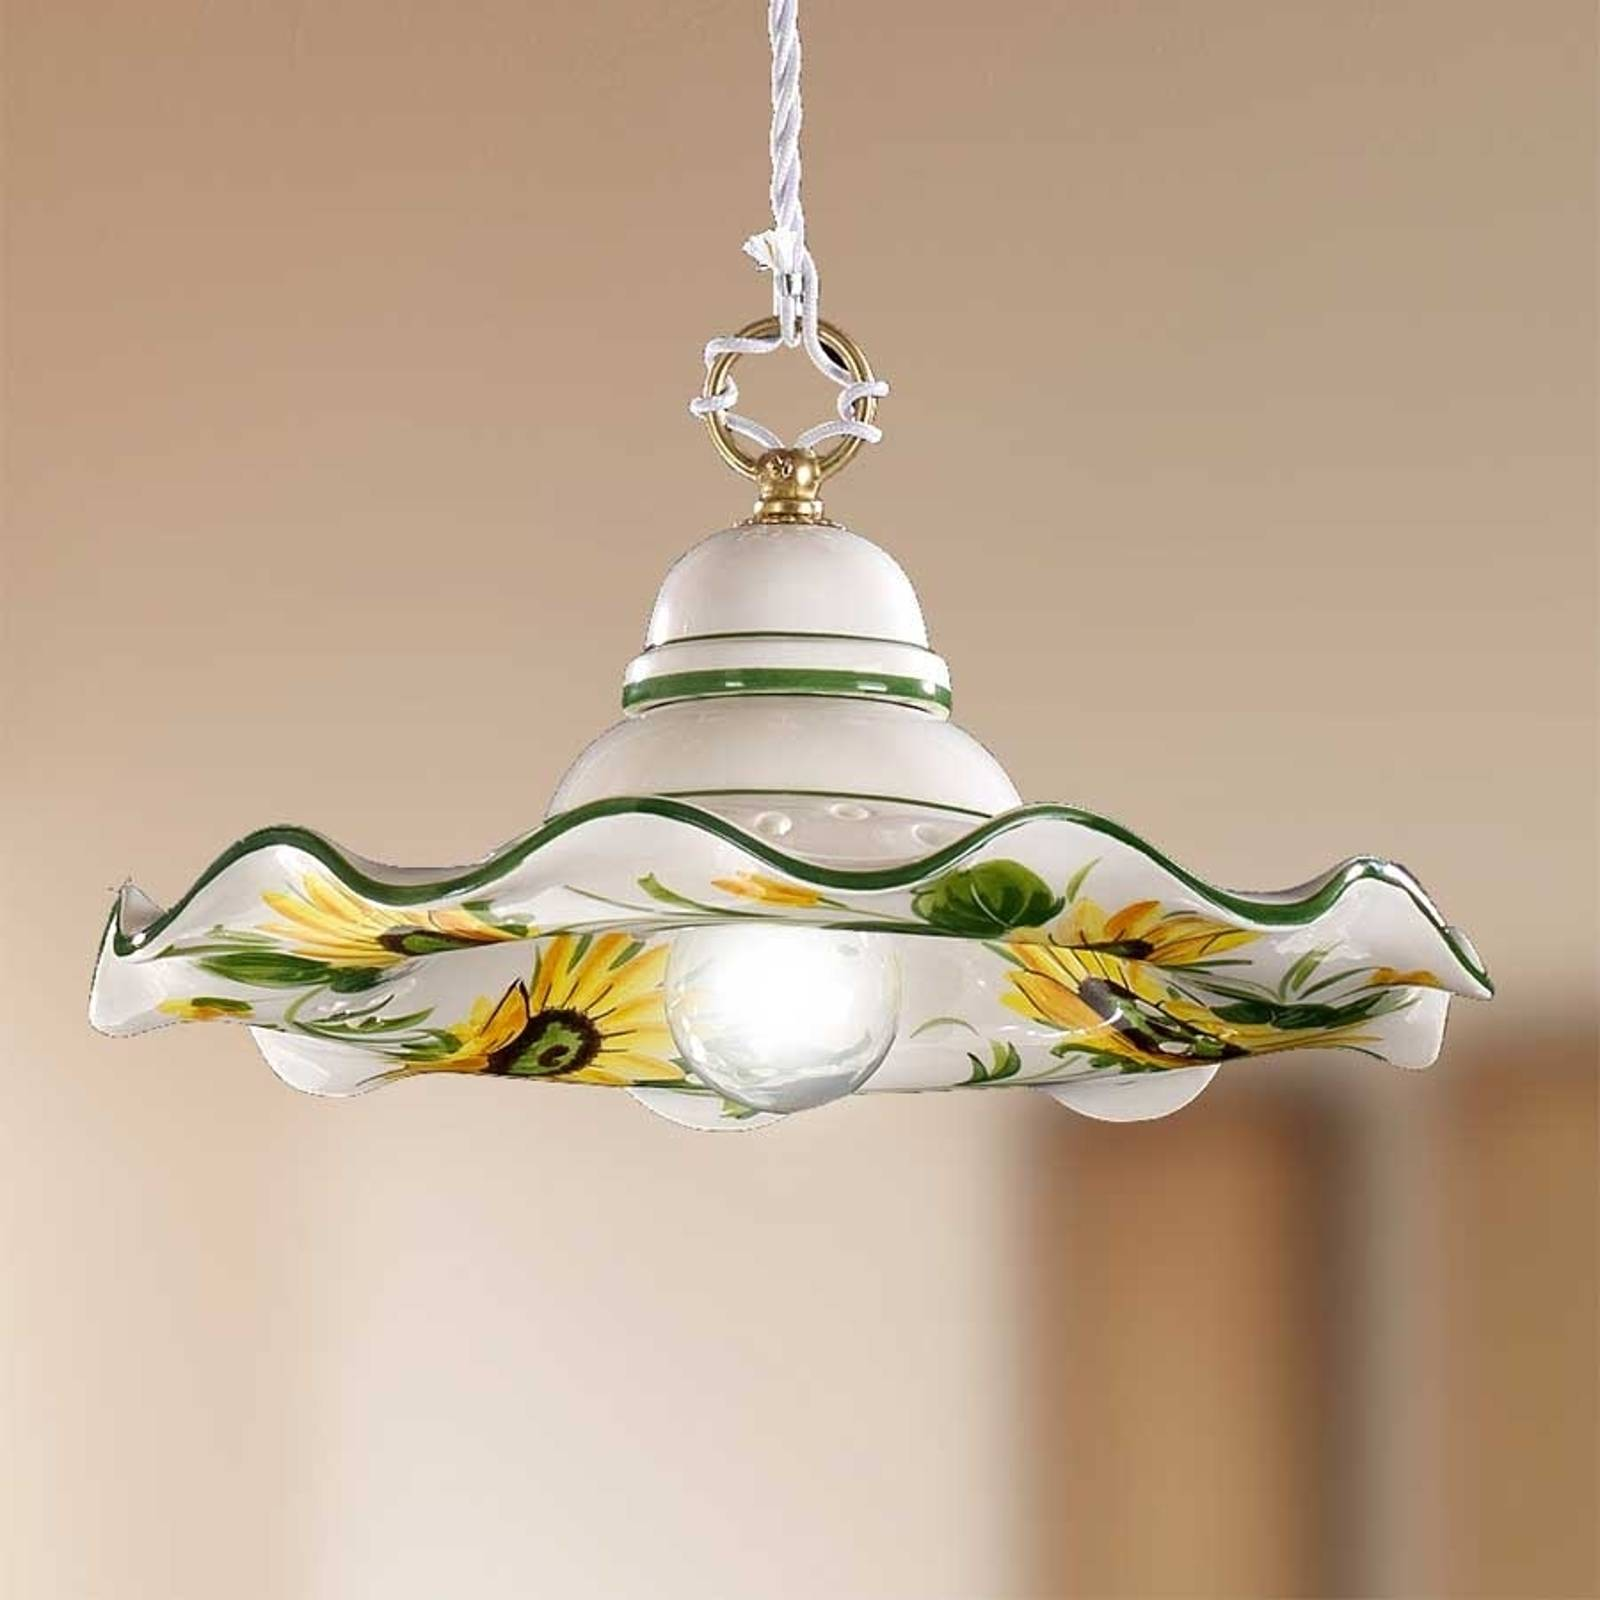 GIRASOLA hanging light, country house charm, 32 cm from Ceramiche